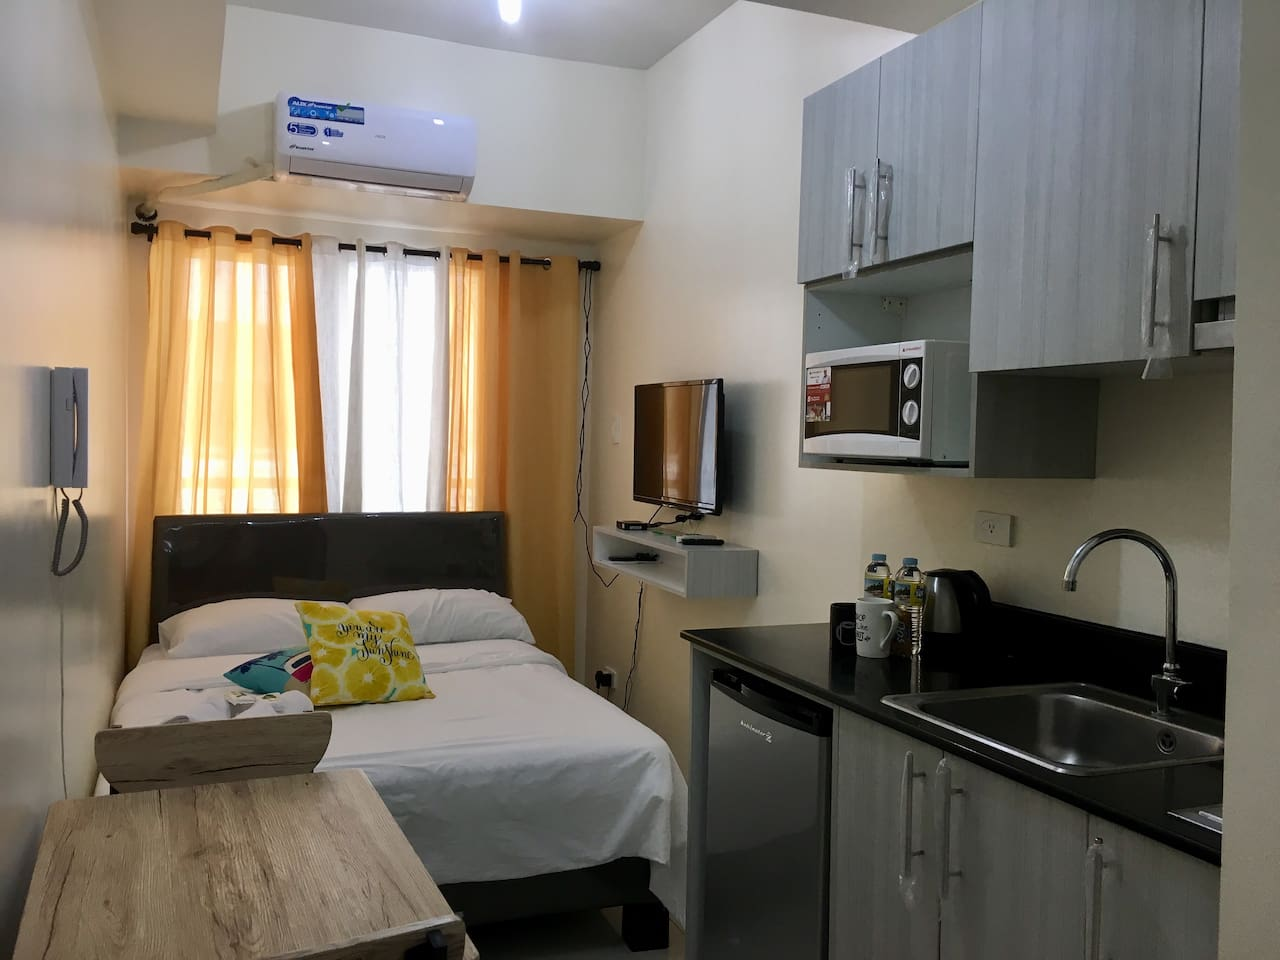 """A16sqm studio unit that is fully air-conditioned and equipped with double bed comfortable for 2, 32"""" LED local tv, pocketWiFi(by request), kitchenette with electric stove, iron, mini fridge, microwave, and coffee making facilities."""